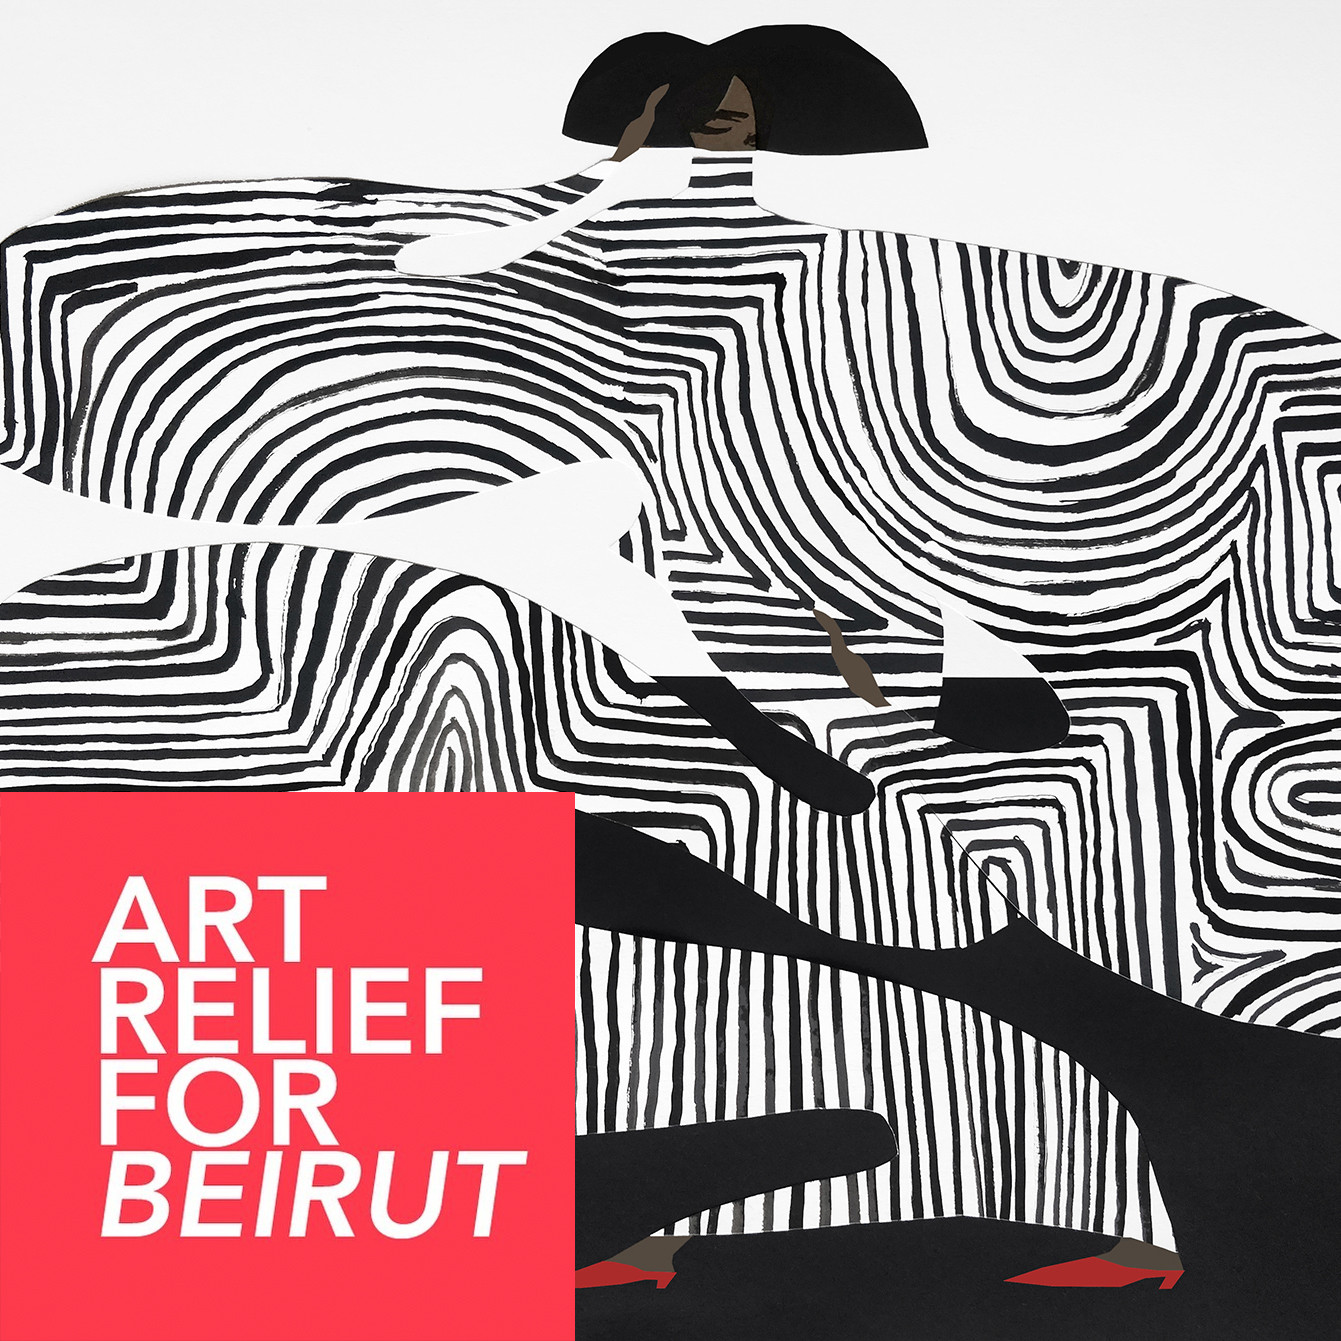 Art Relief for Beirut